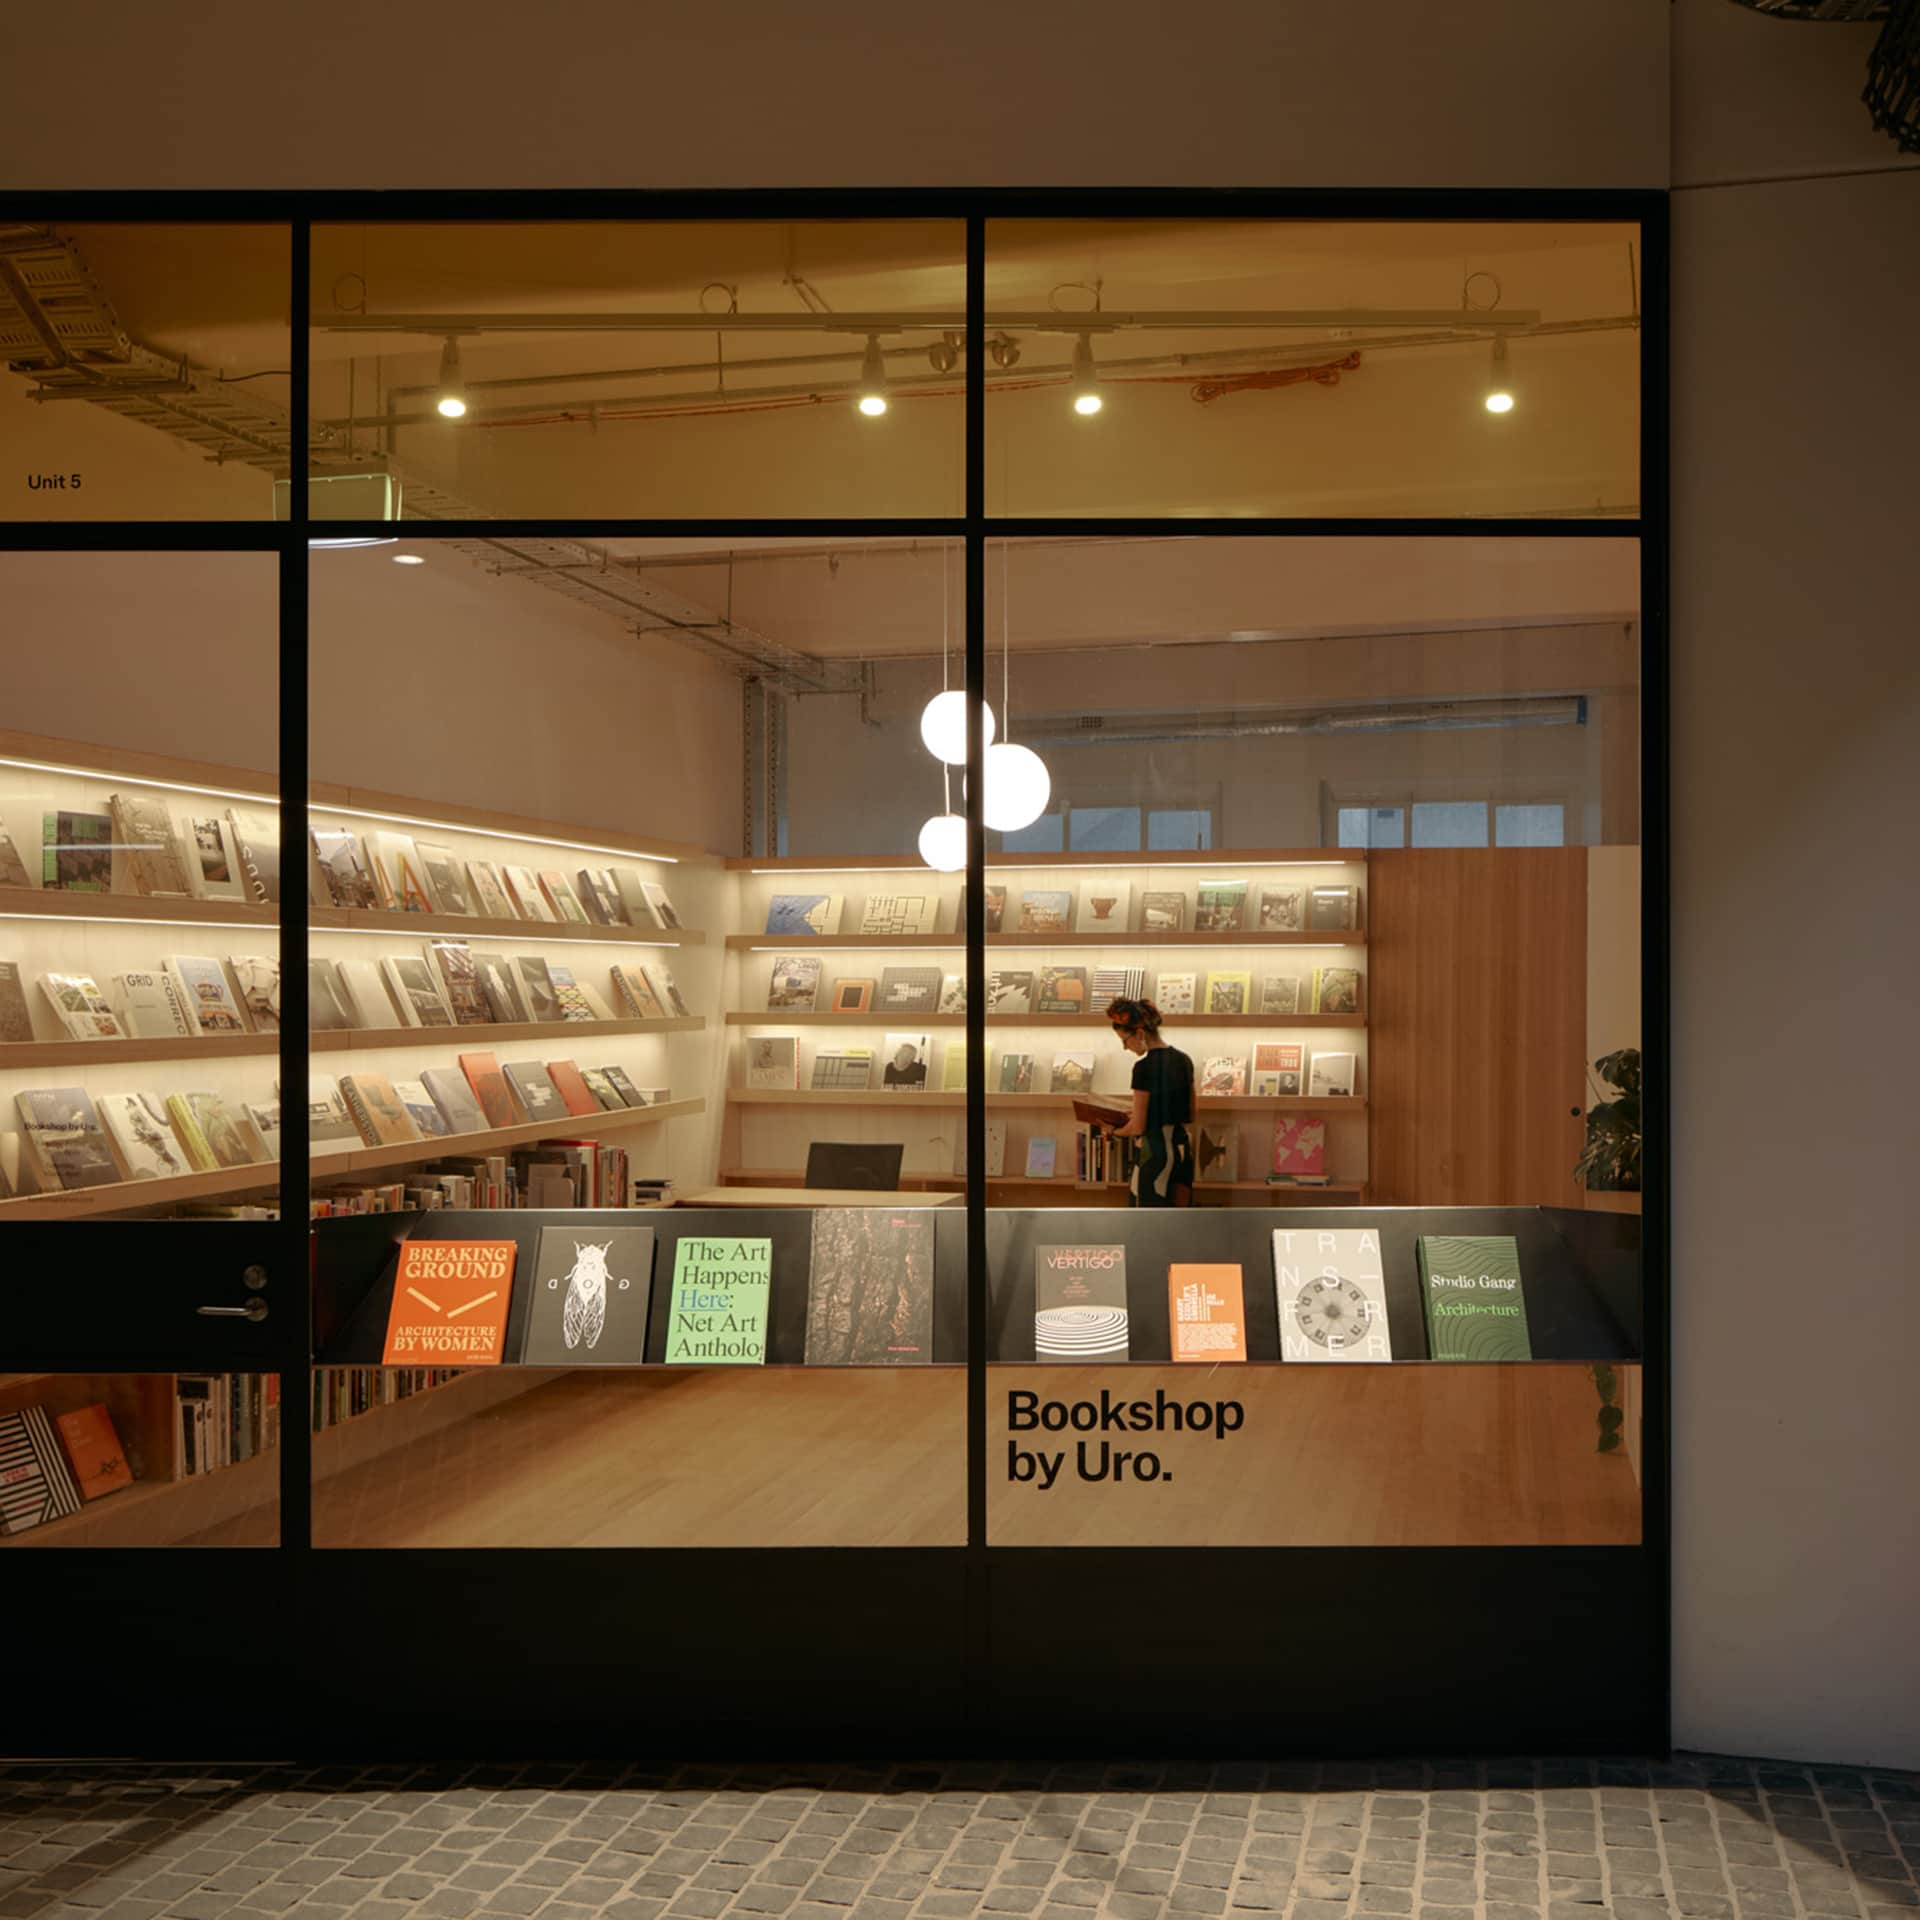 Bookshop by Uro. Photo: Tom Ross.